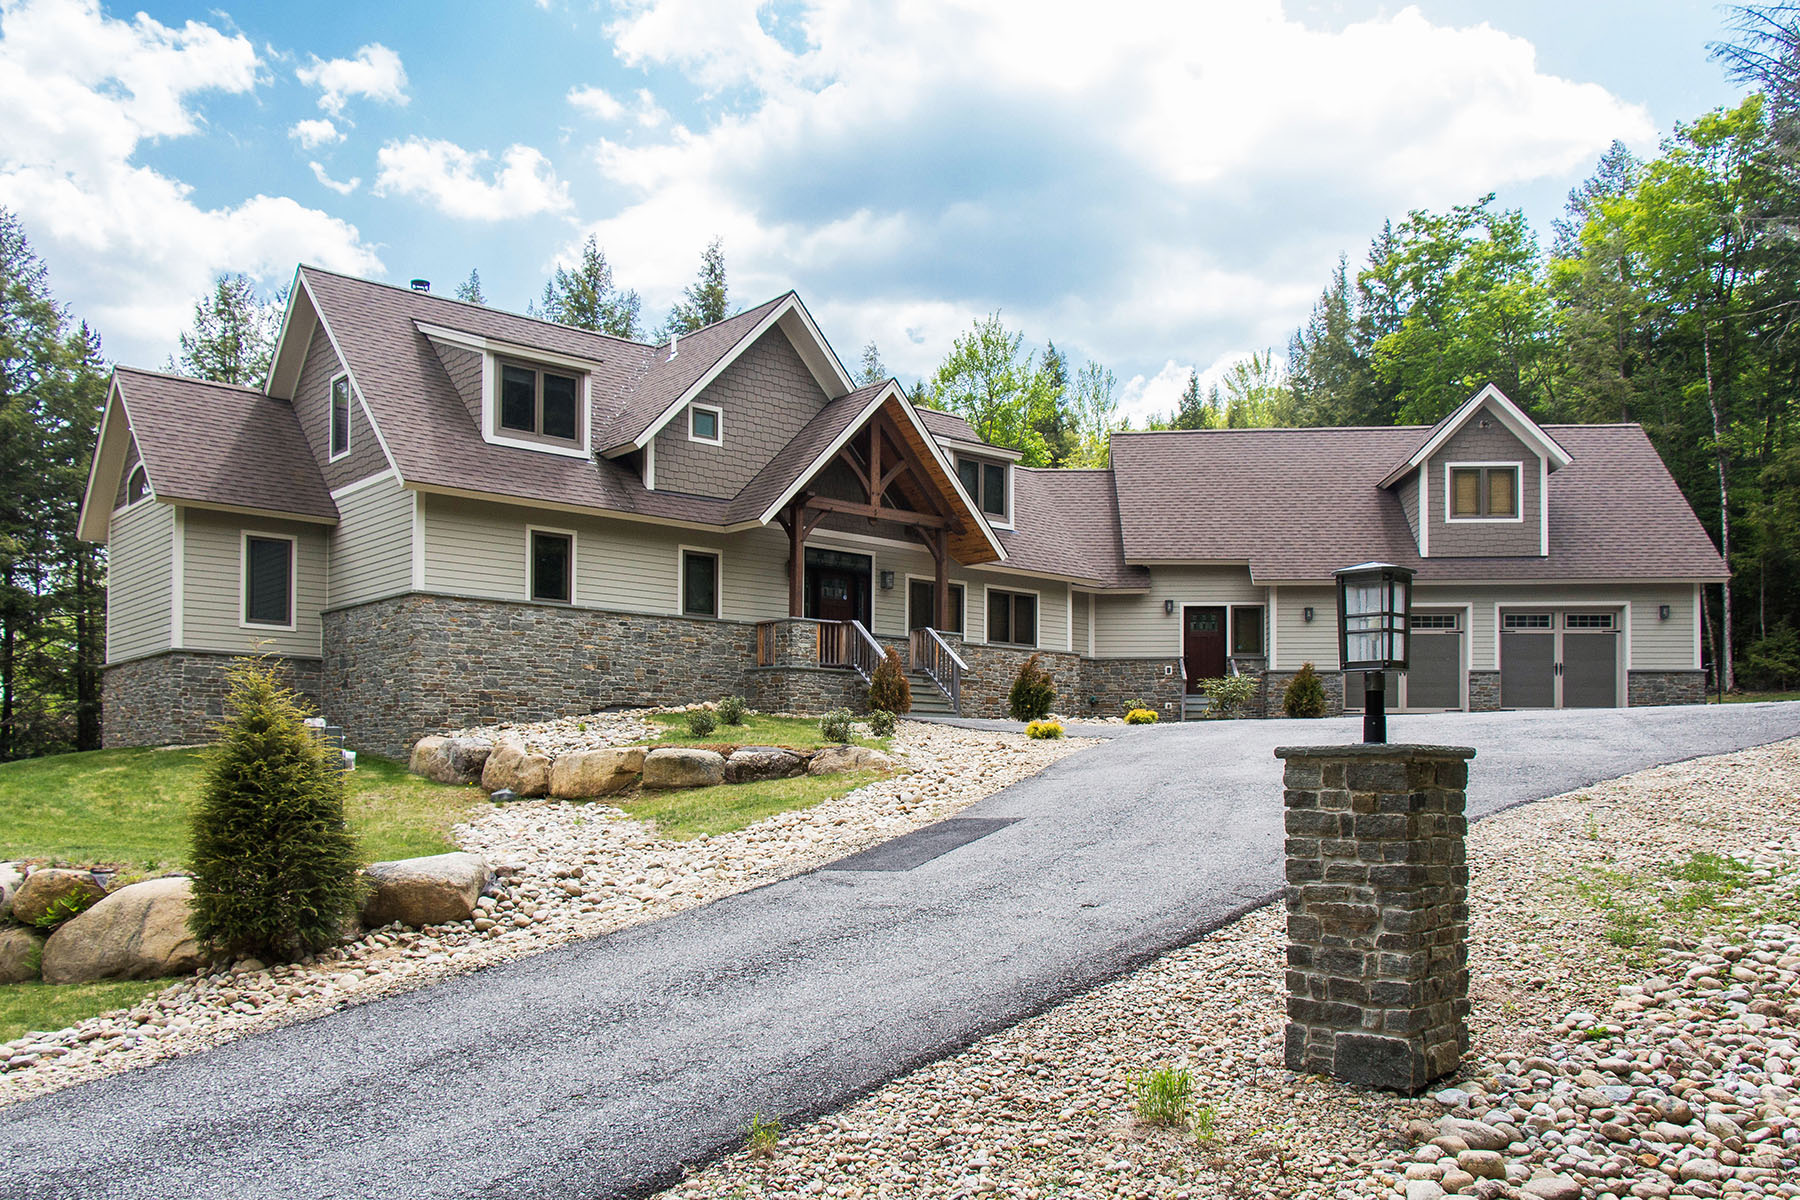 Single Family Home for Sale at Luxury Wood Pegged Timber Frame 15 Straight Brook Ln North Creek, New York, 12853 United States